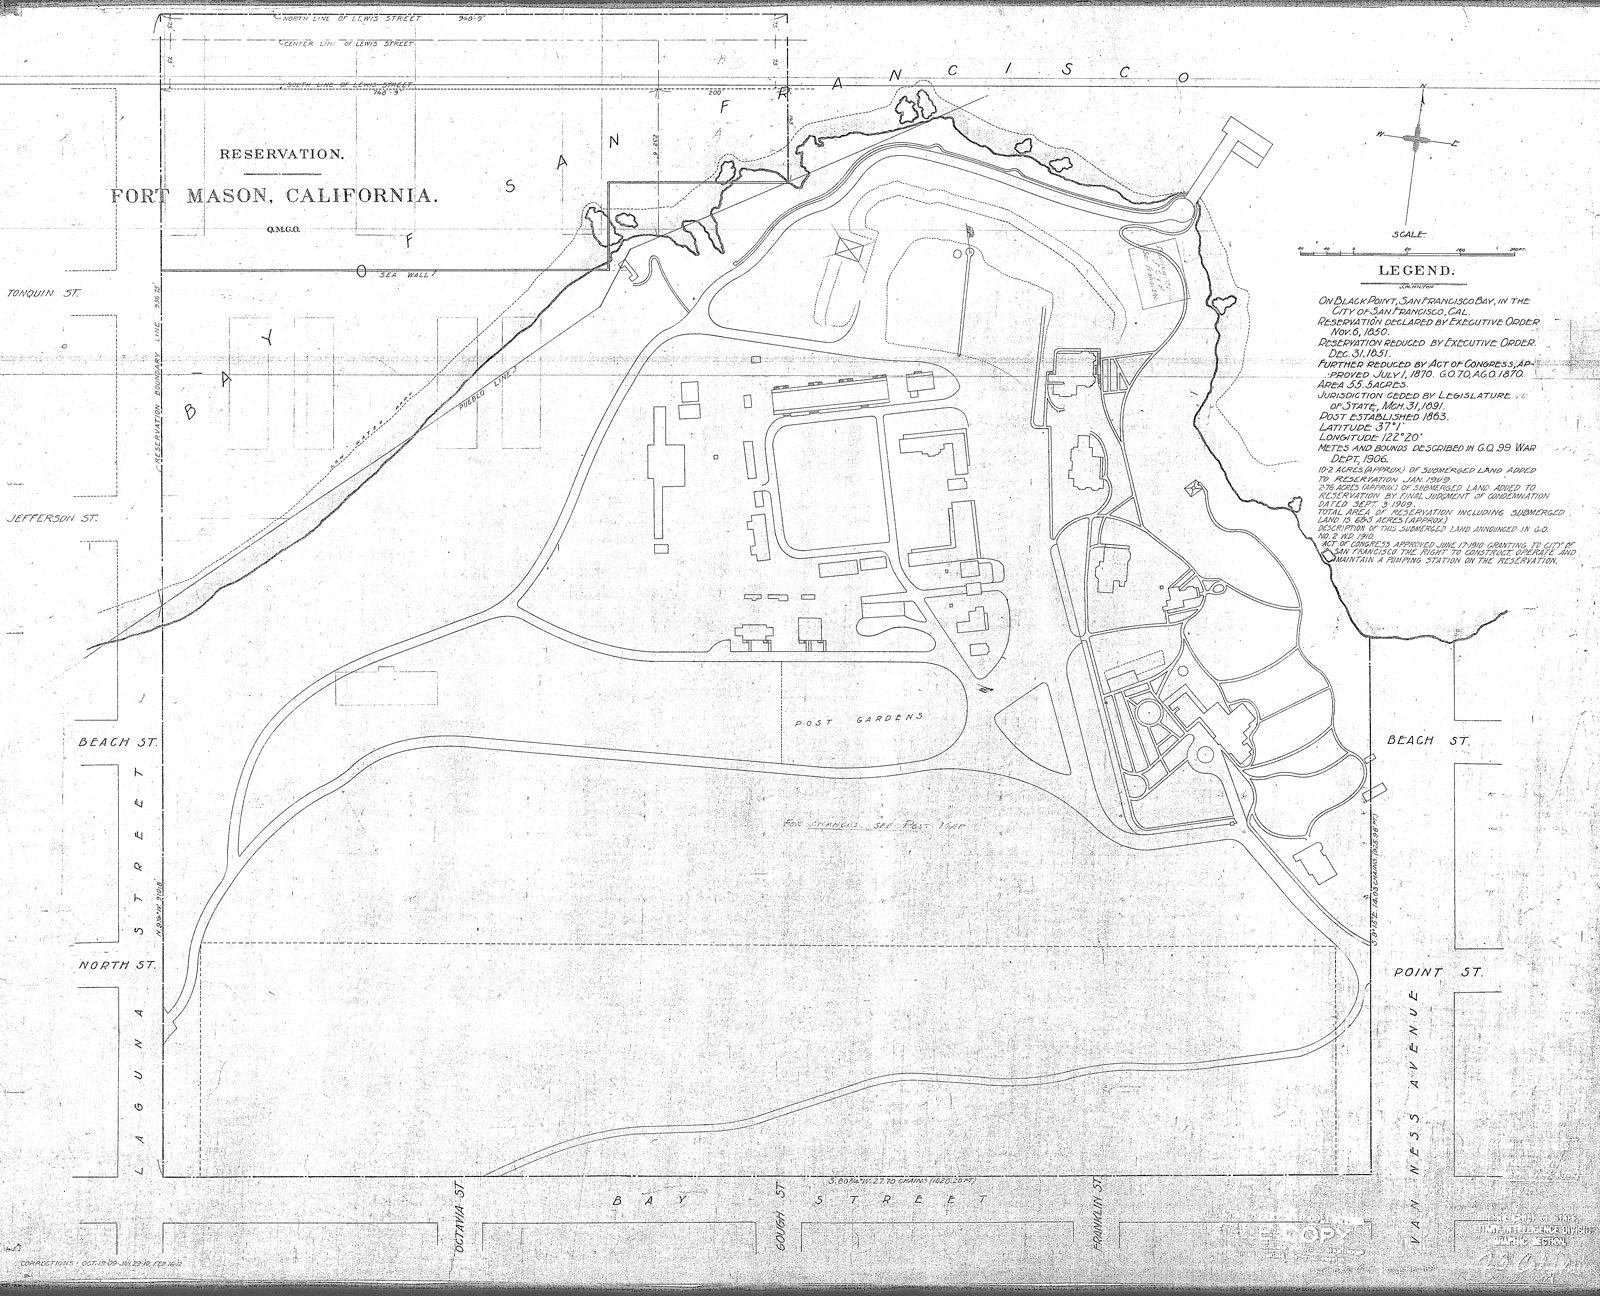 1912 reservation map click the map to view a larger clearer image